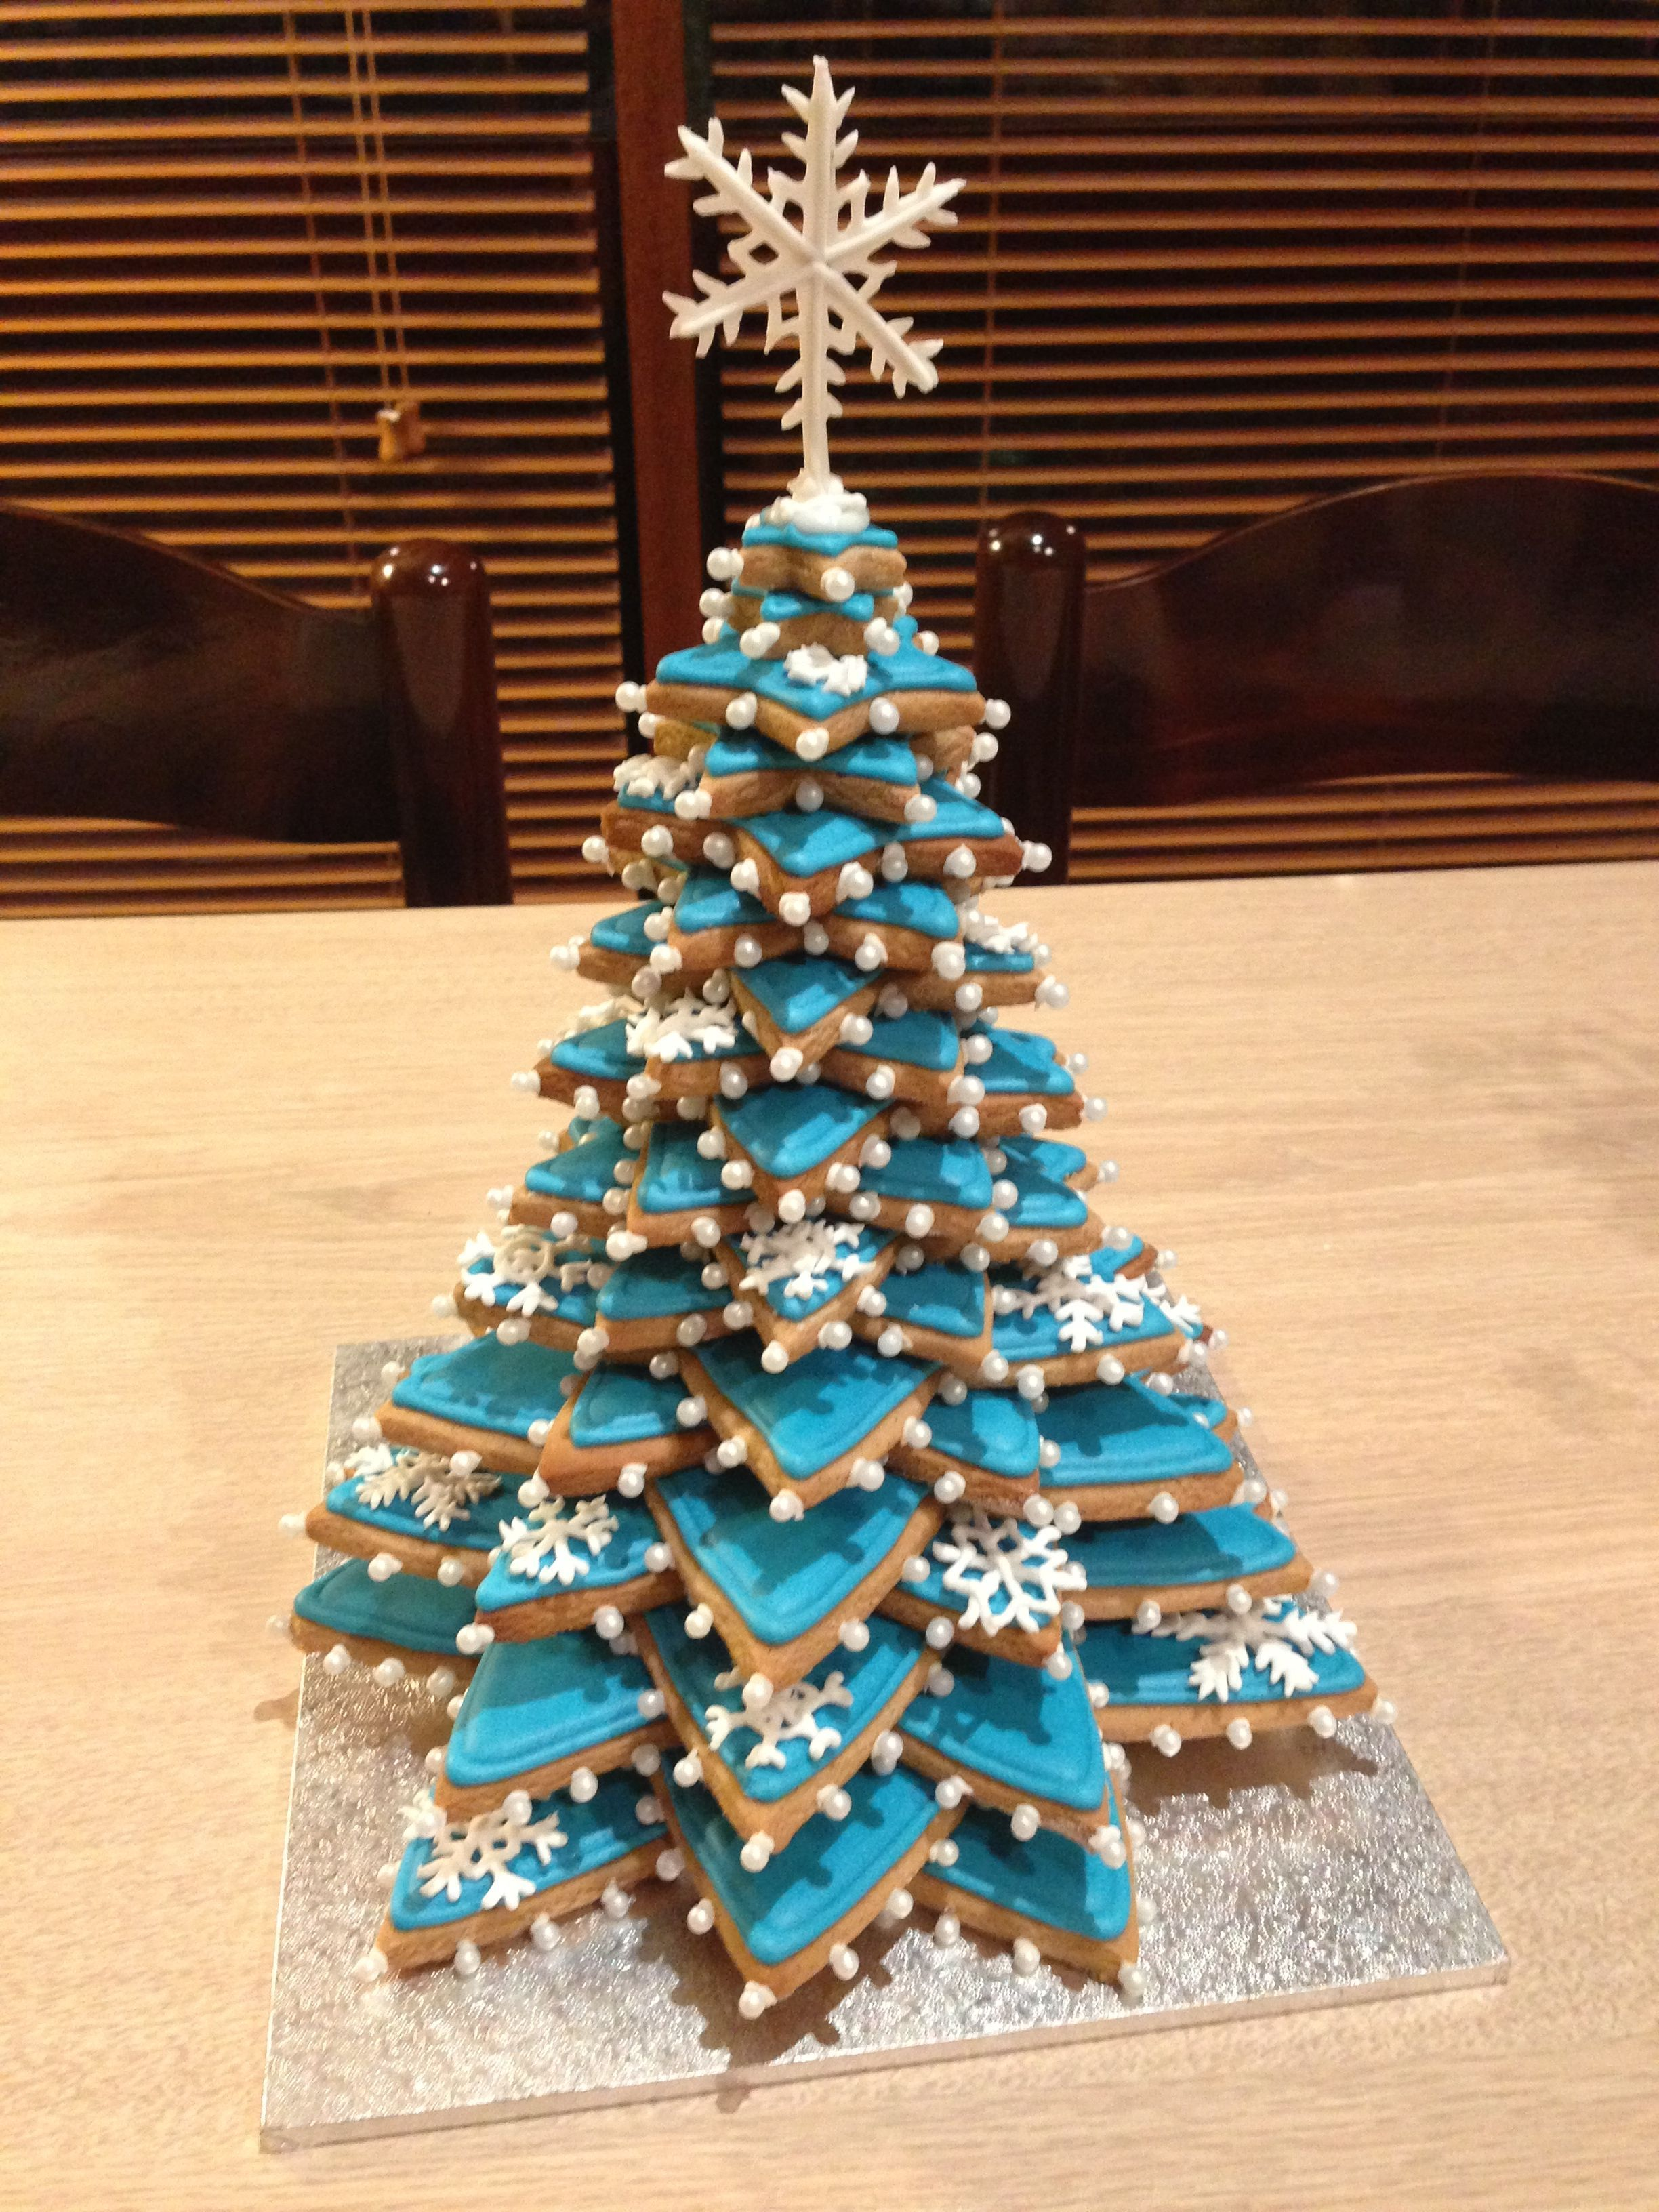 Gingerbread Christmas Tree Gingerbread And Royal Icing Cooking